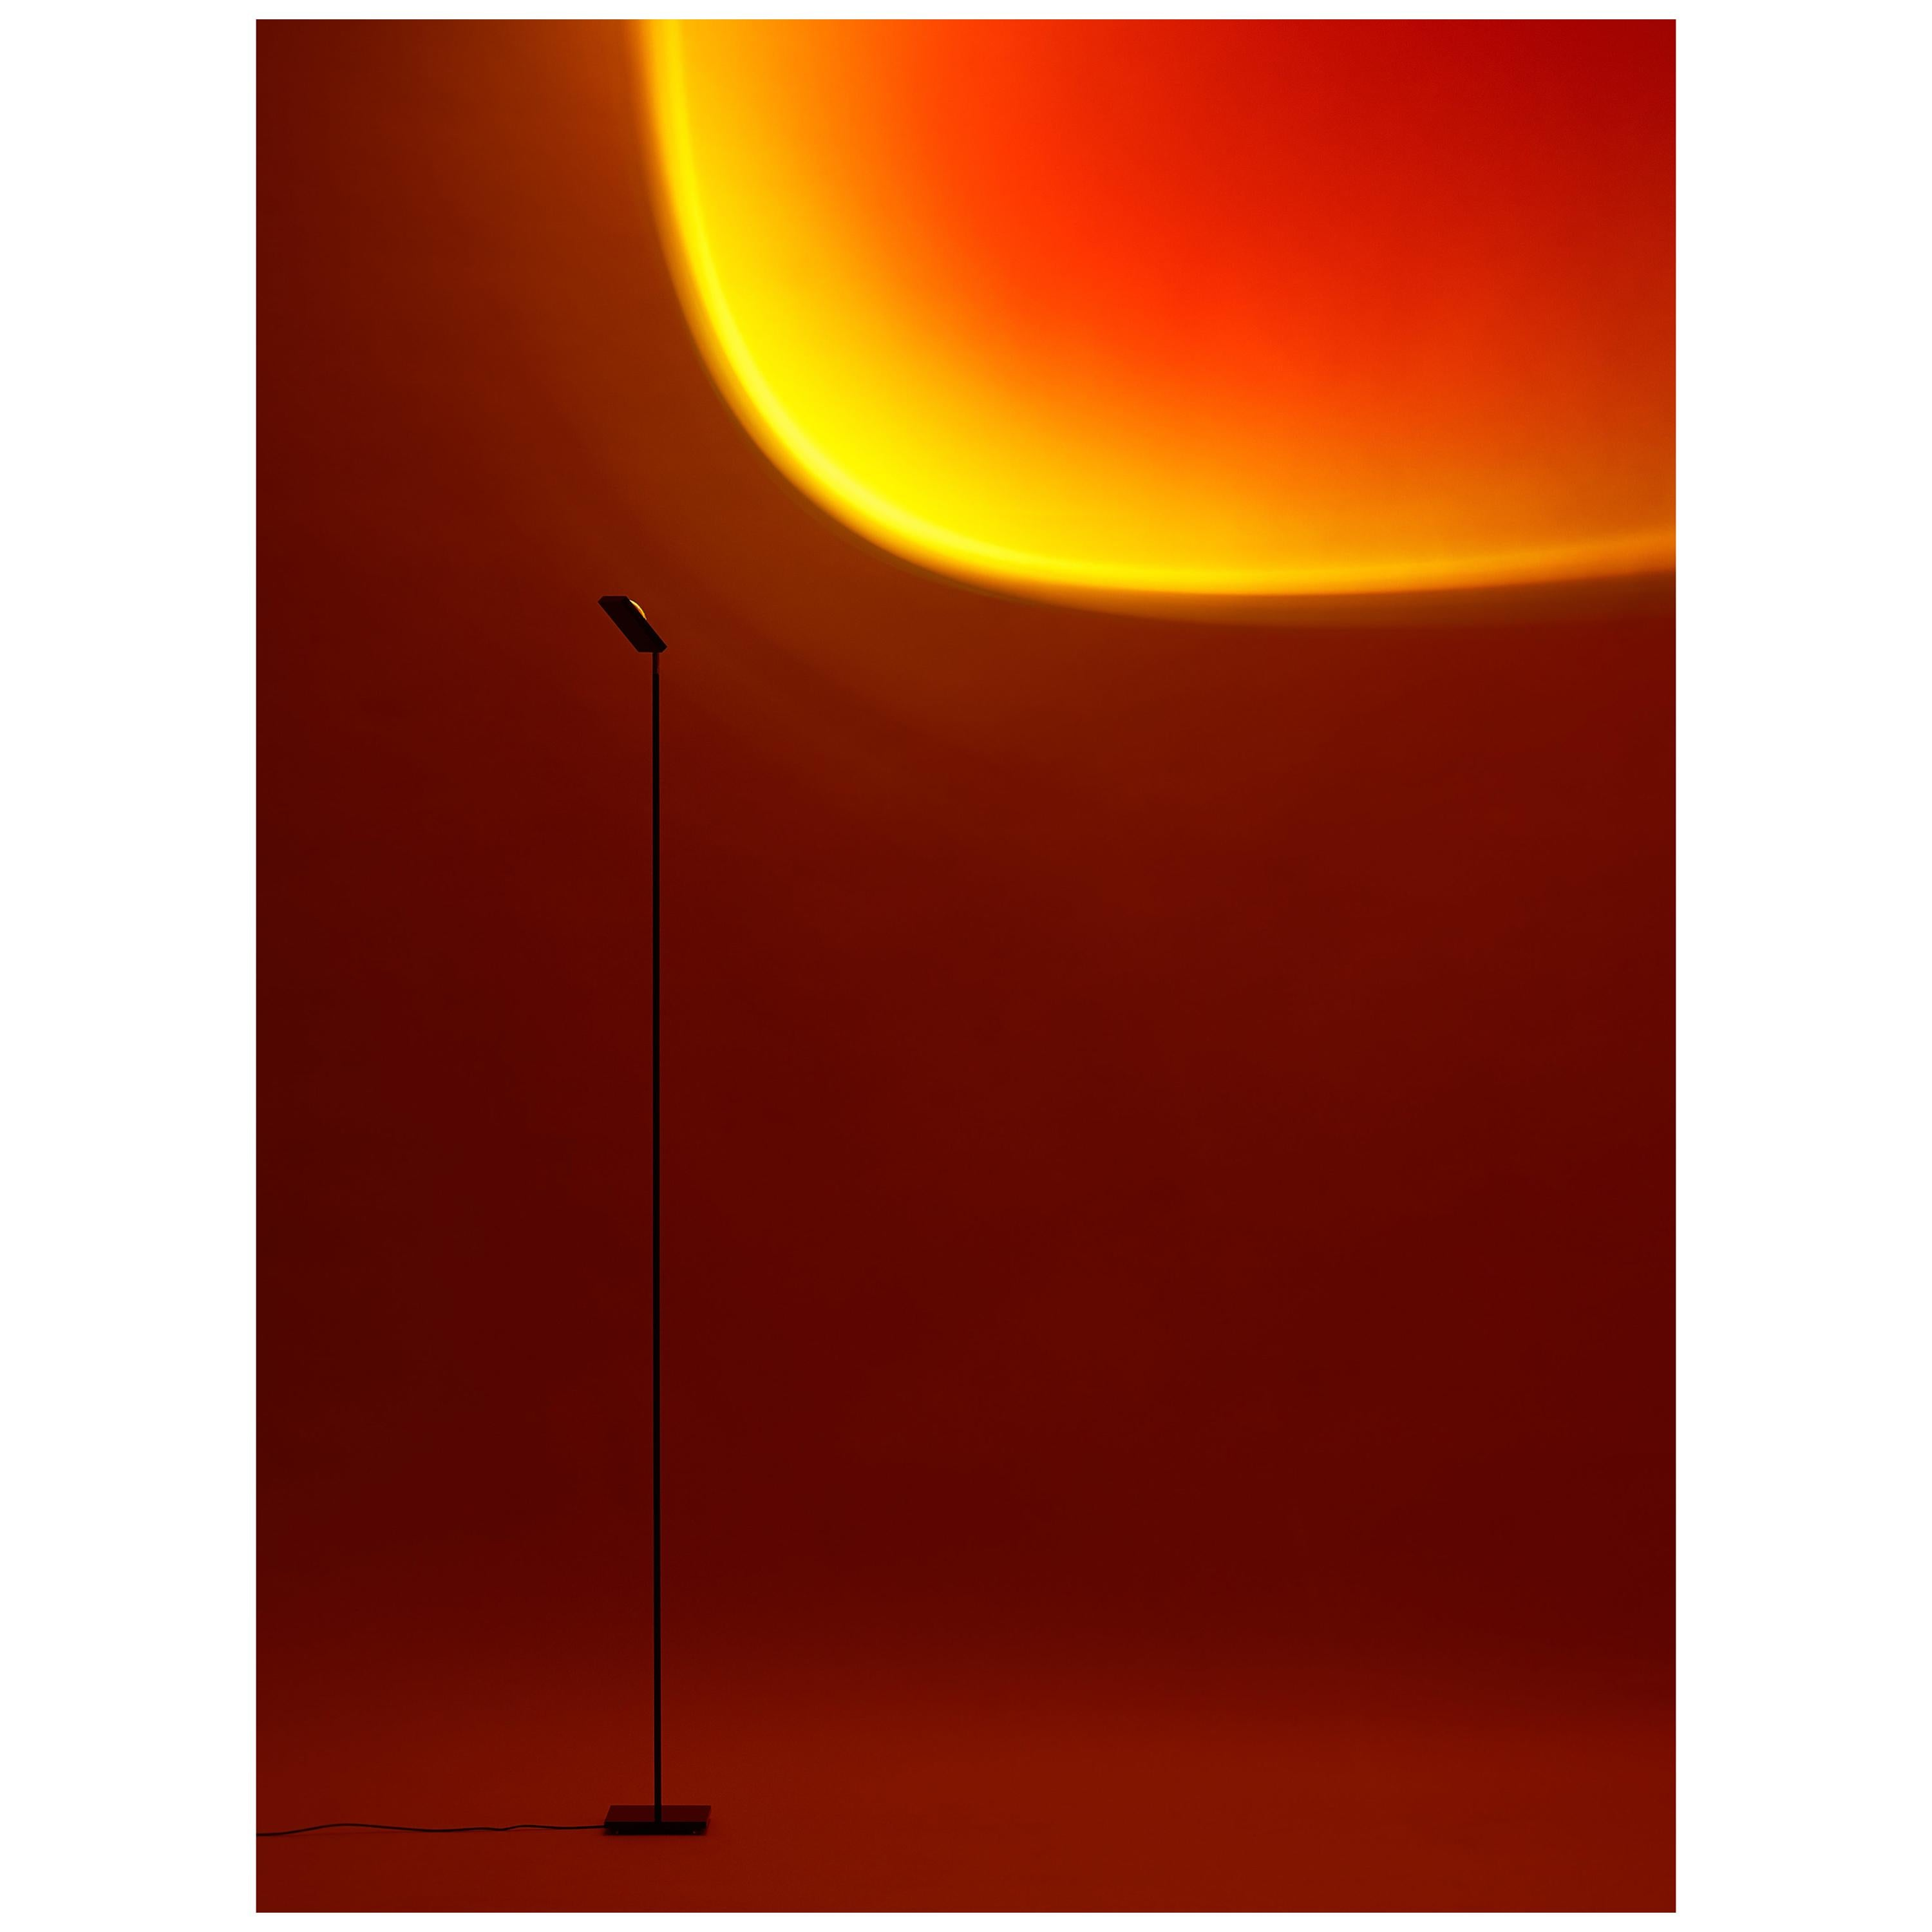 'Halo Big' Sunset Red Floor Lamp/ Color Projector by Mandalaki Studio